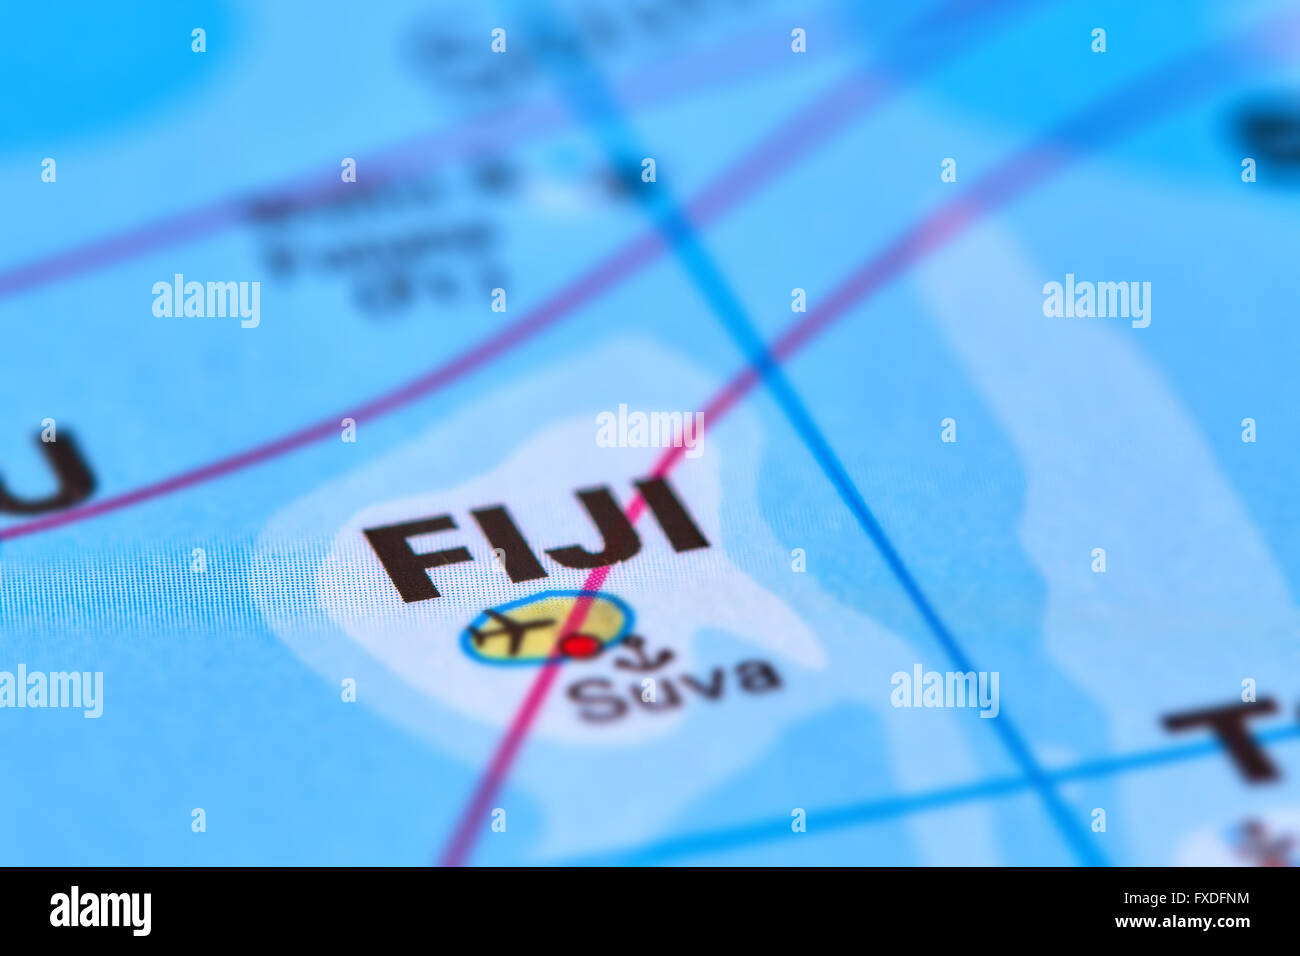 Fiji Island In Oceania On The World Map Stock Photo 102330640 Alamy